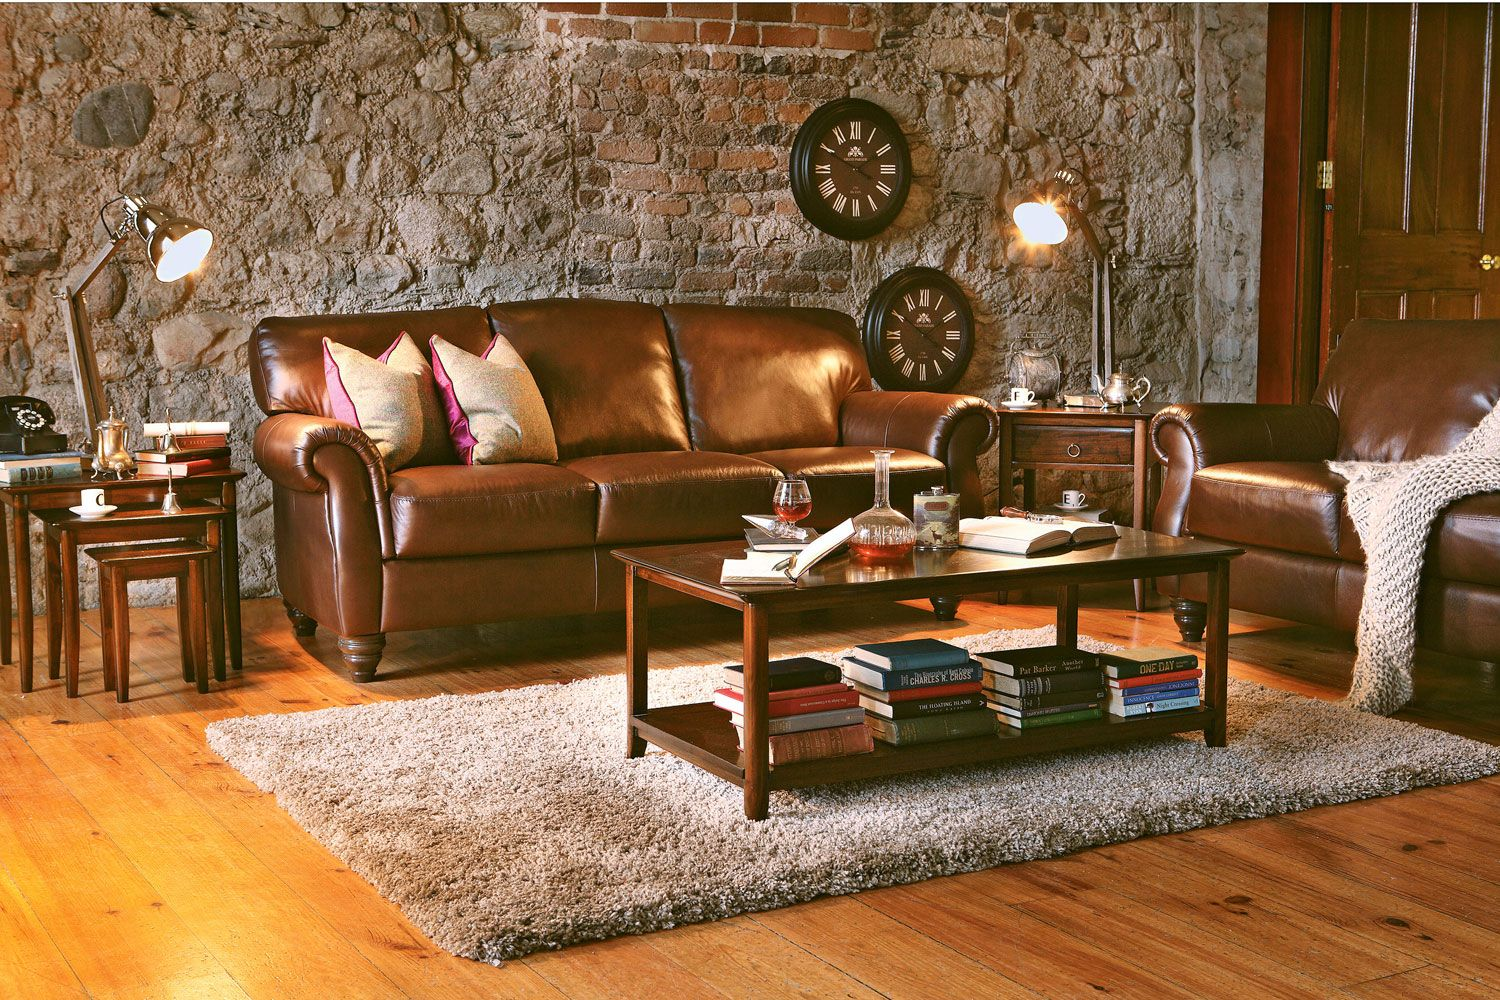 Salgari 3 Seater Leather Sofa From Harvey Norman Ireland 3 Seater Leather Sofa Italian Leather Furniture Faux Leather Sofa